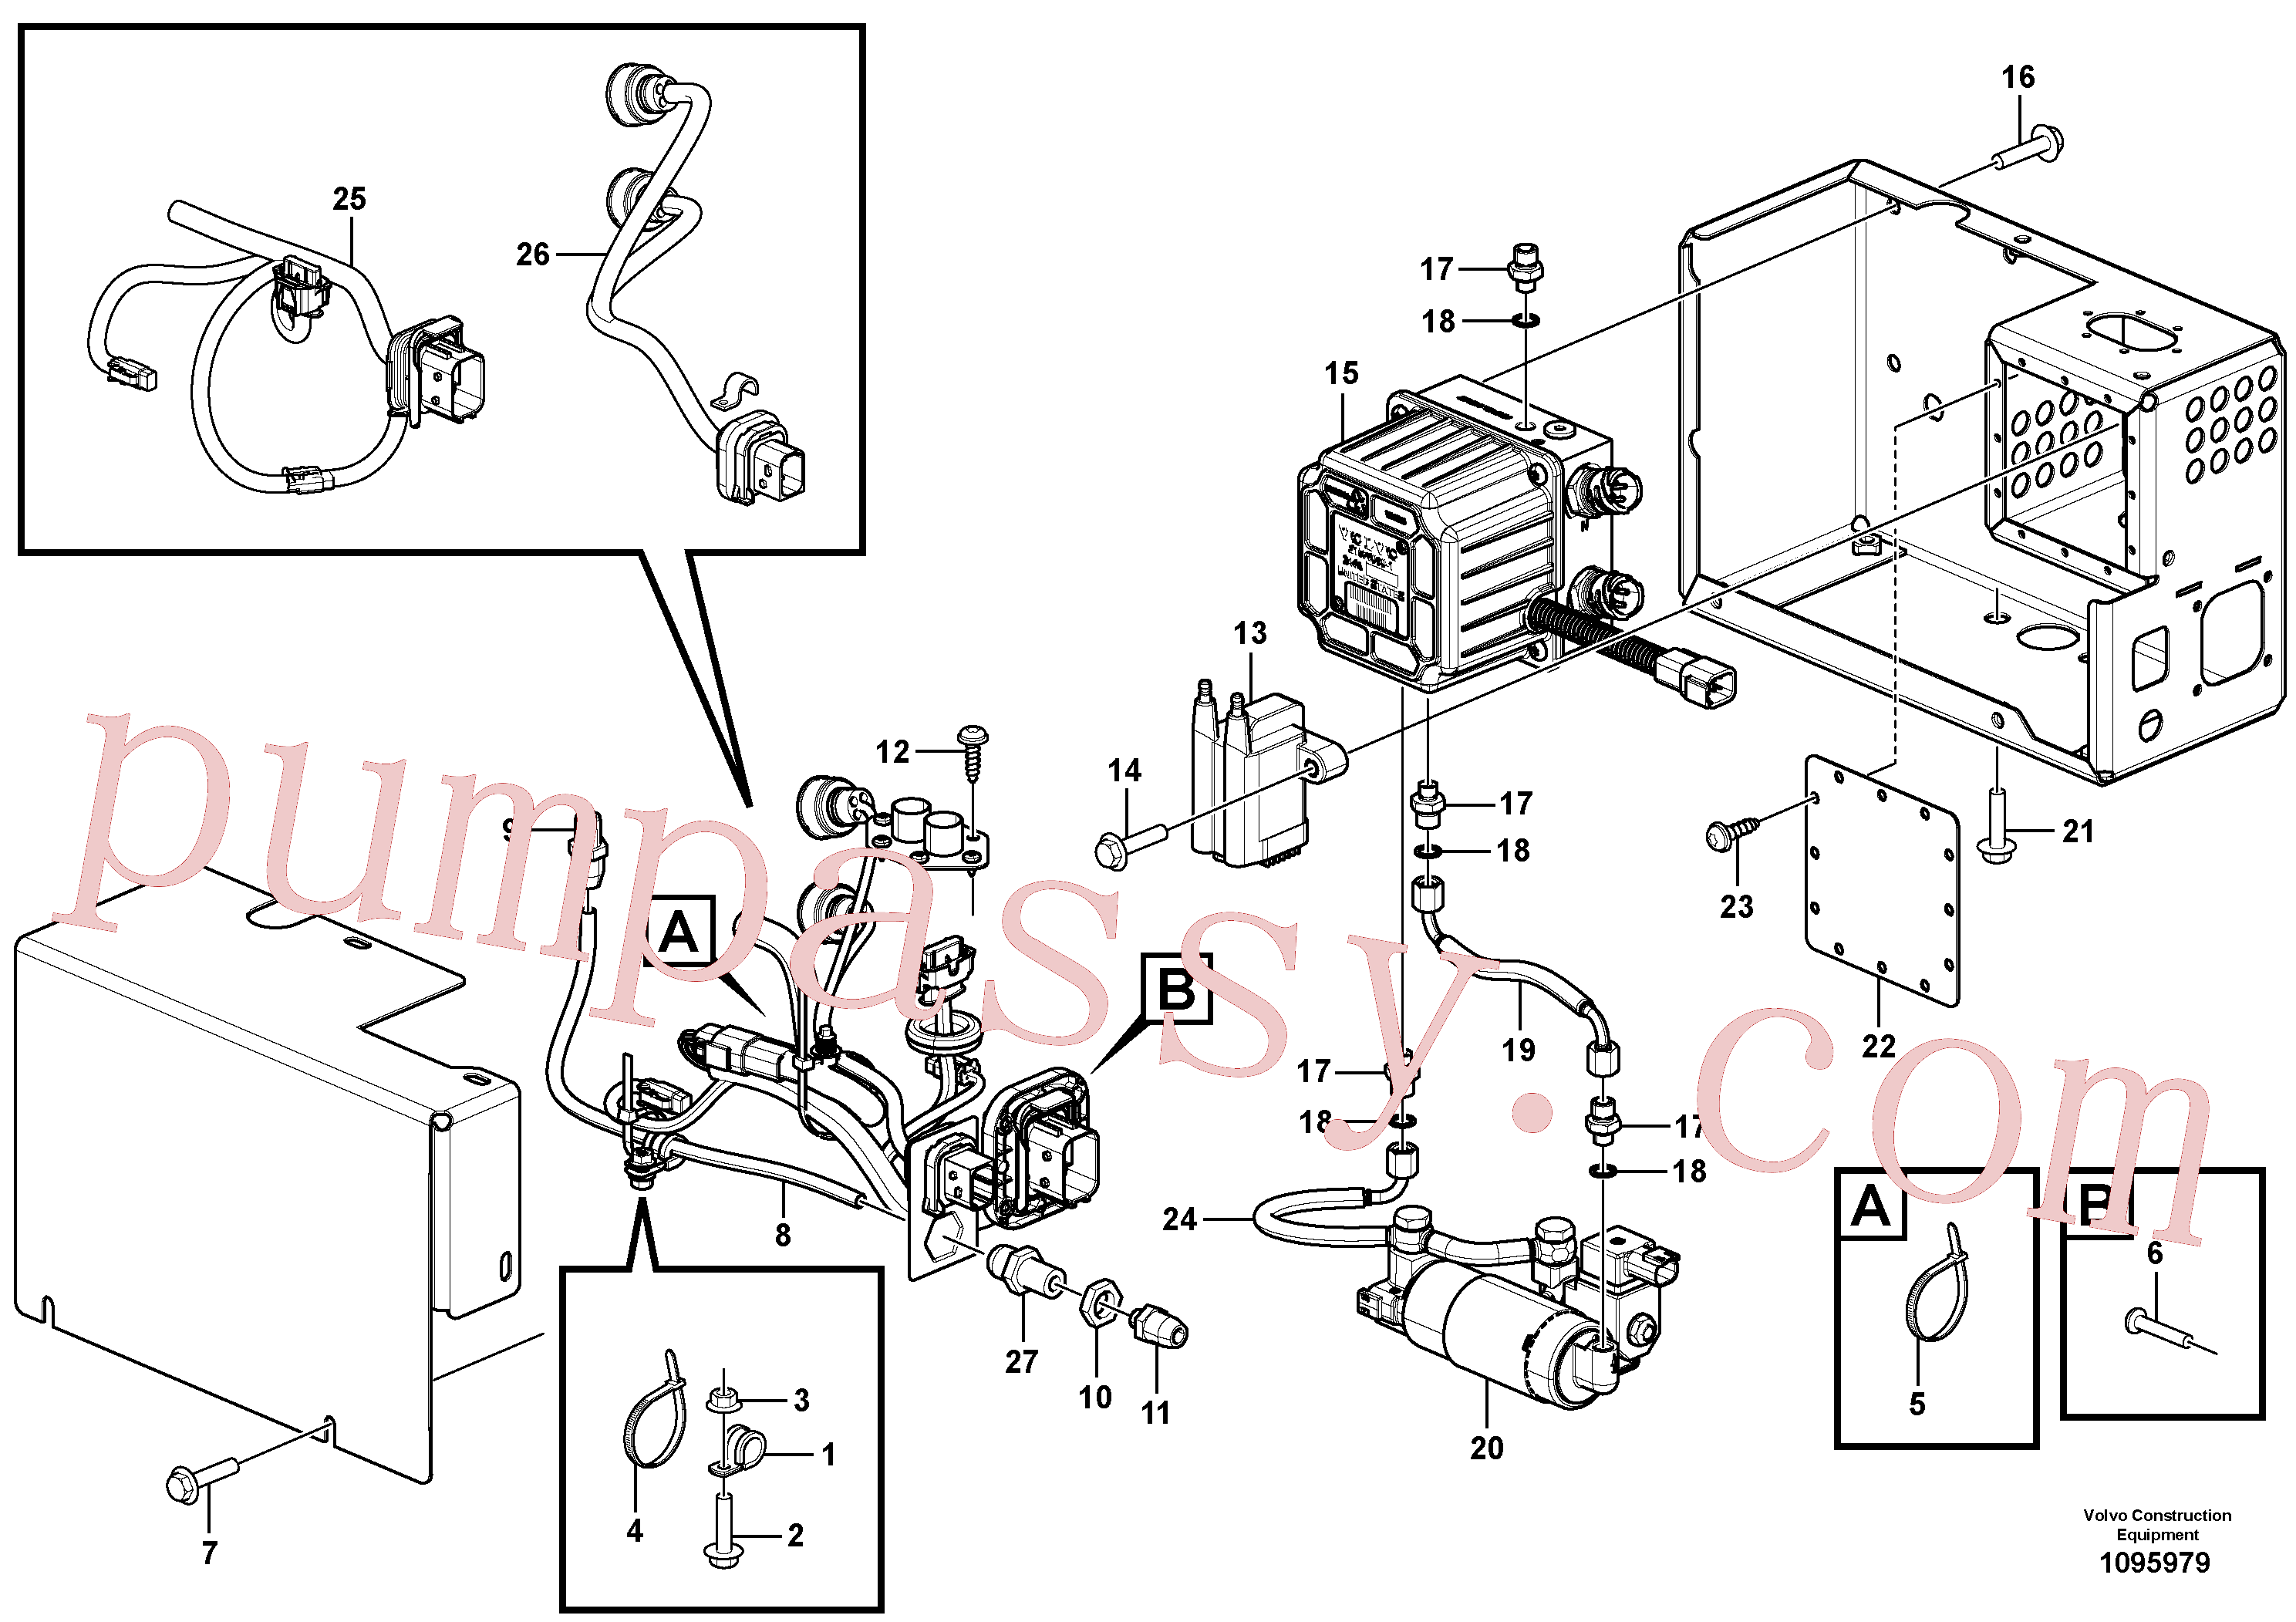 VOE957018 for Volvo Aftertreatment Support Unit(1095979 assembly)